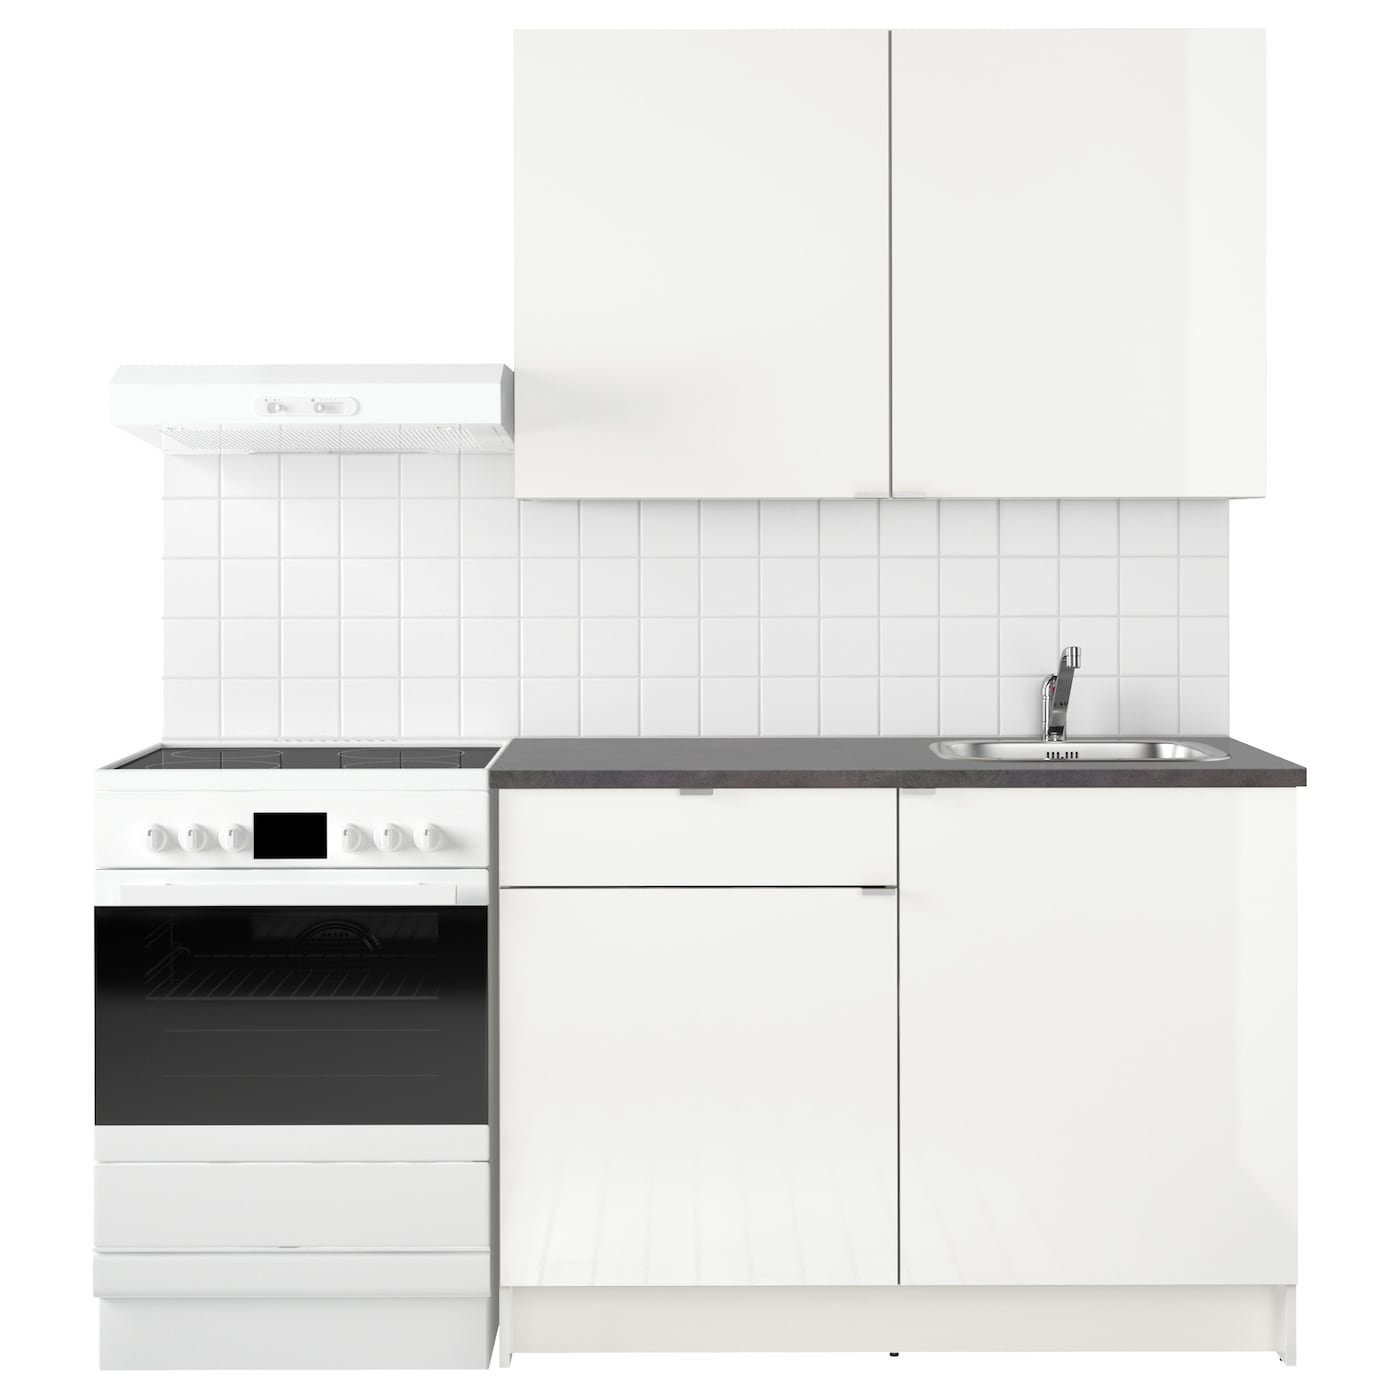 Modular Kitchens - Modular Kitchen Units - IKEA